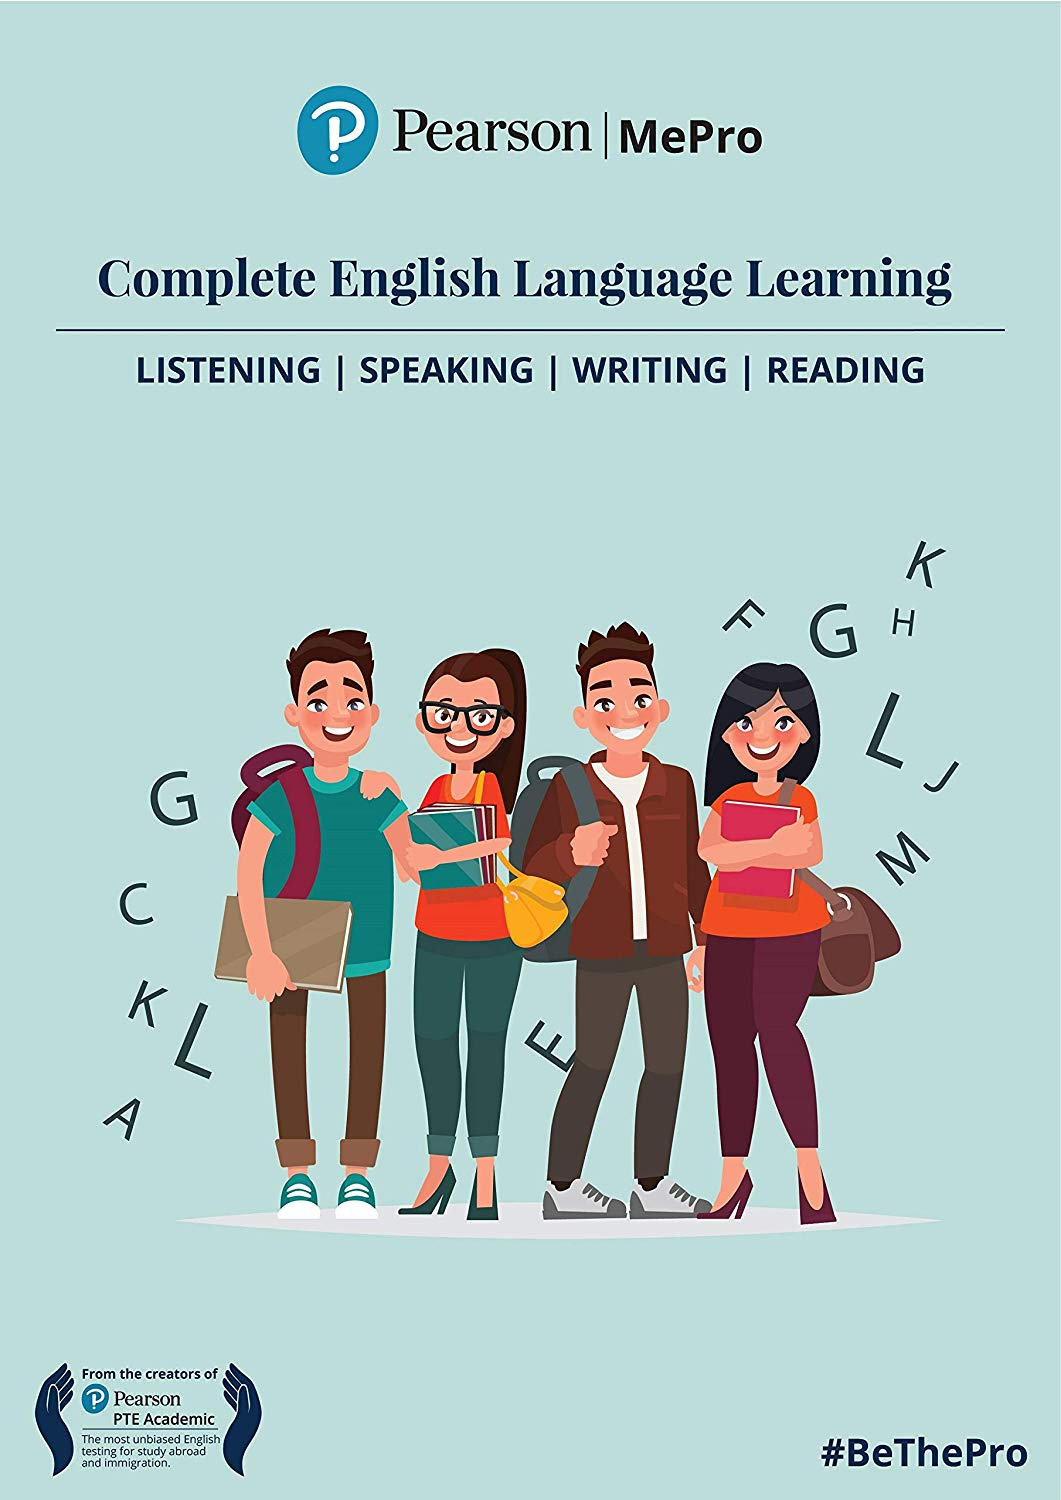 Pearson MePro | Master Essential Skills of English Speaking, Reading, Listening & Writin